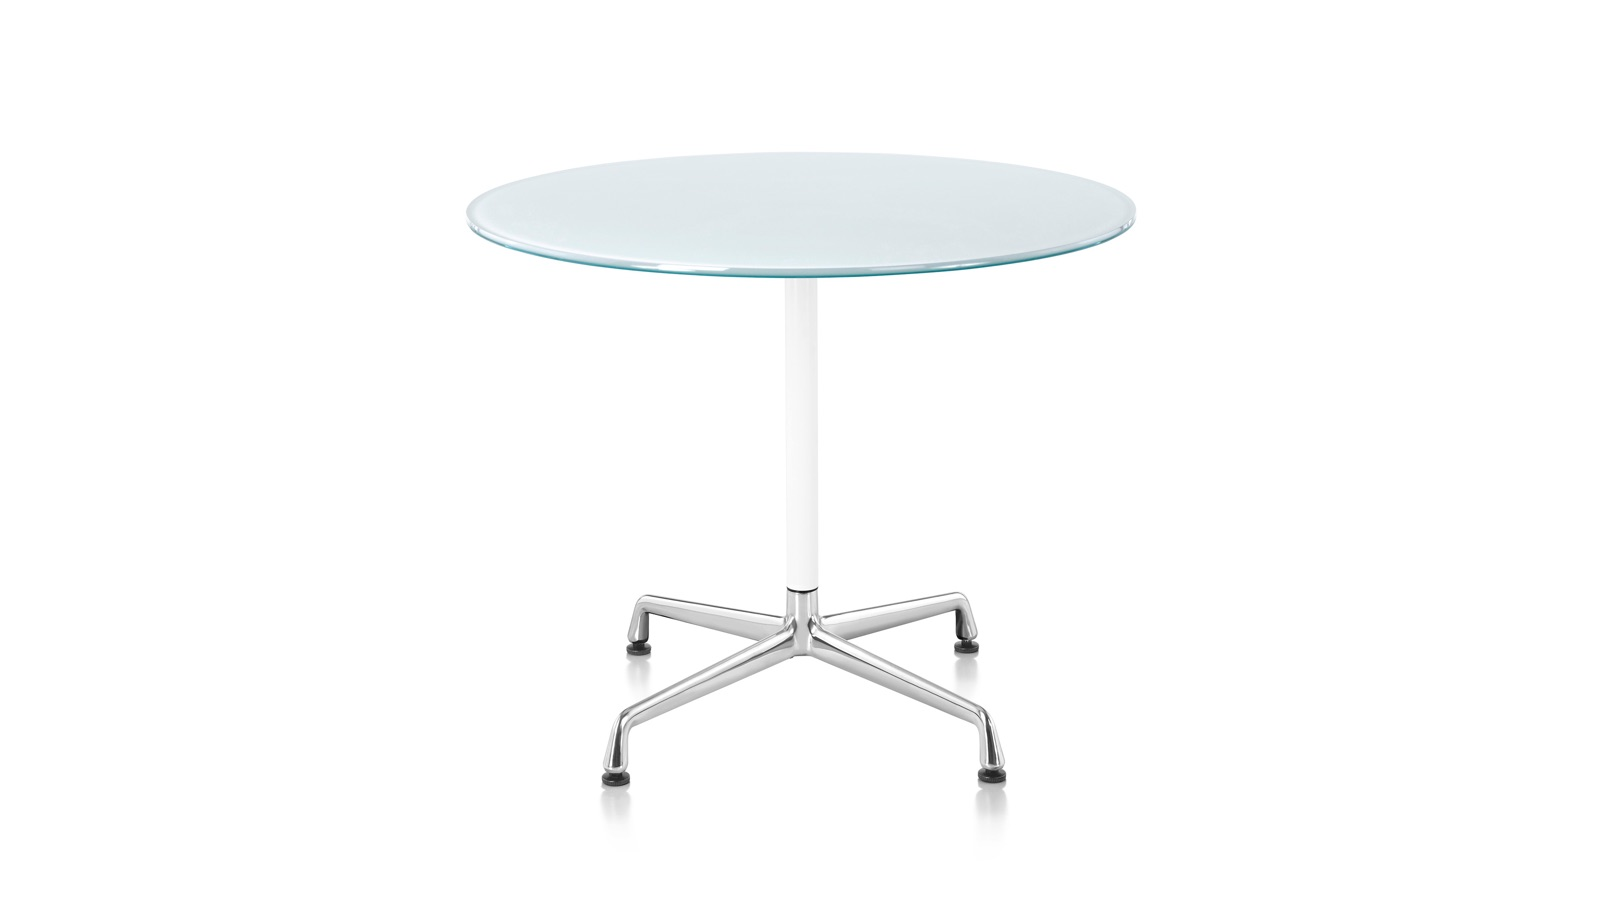 White sweep image of an Eames Conference Table with round top.